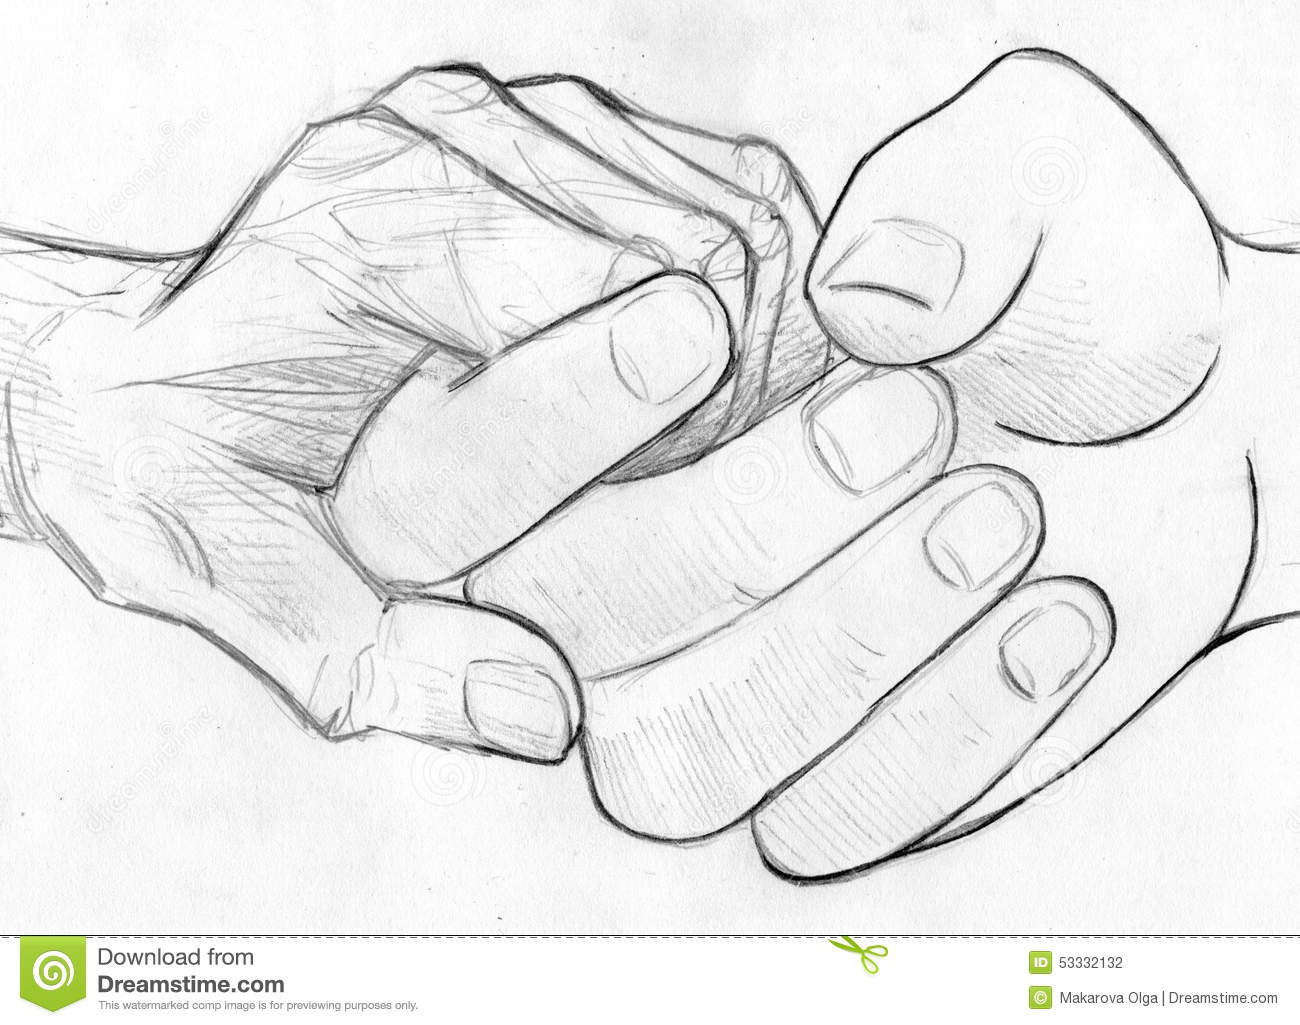 1300x1025 Pencil Drawings Of Couples Holding Hands Holding Elderly Hand